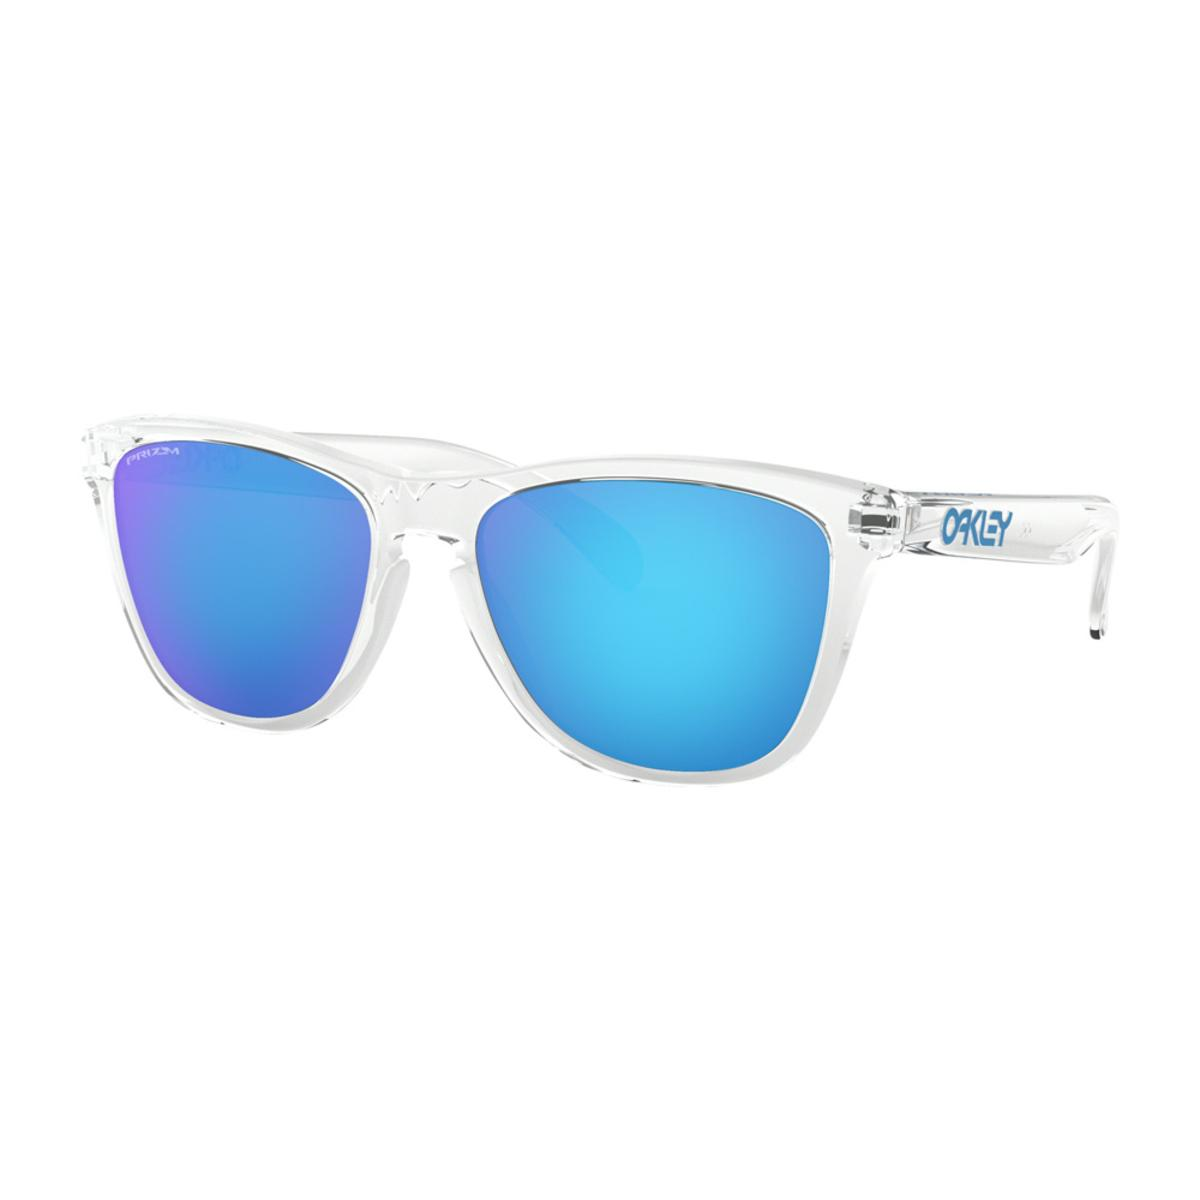 Oakley Frogskins Crystal Clear Sunglasses w Prizm Sapphire - The Warming  Store cc3d79ec15